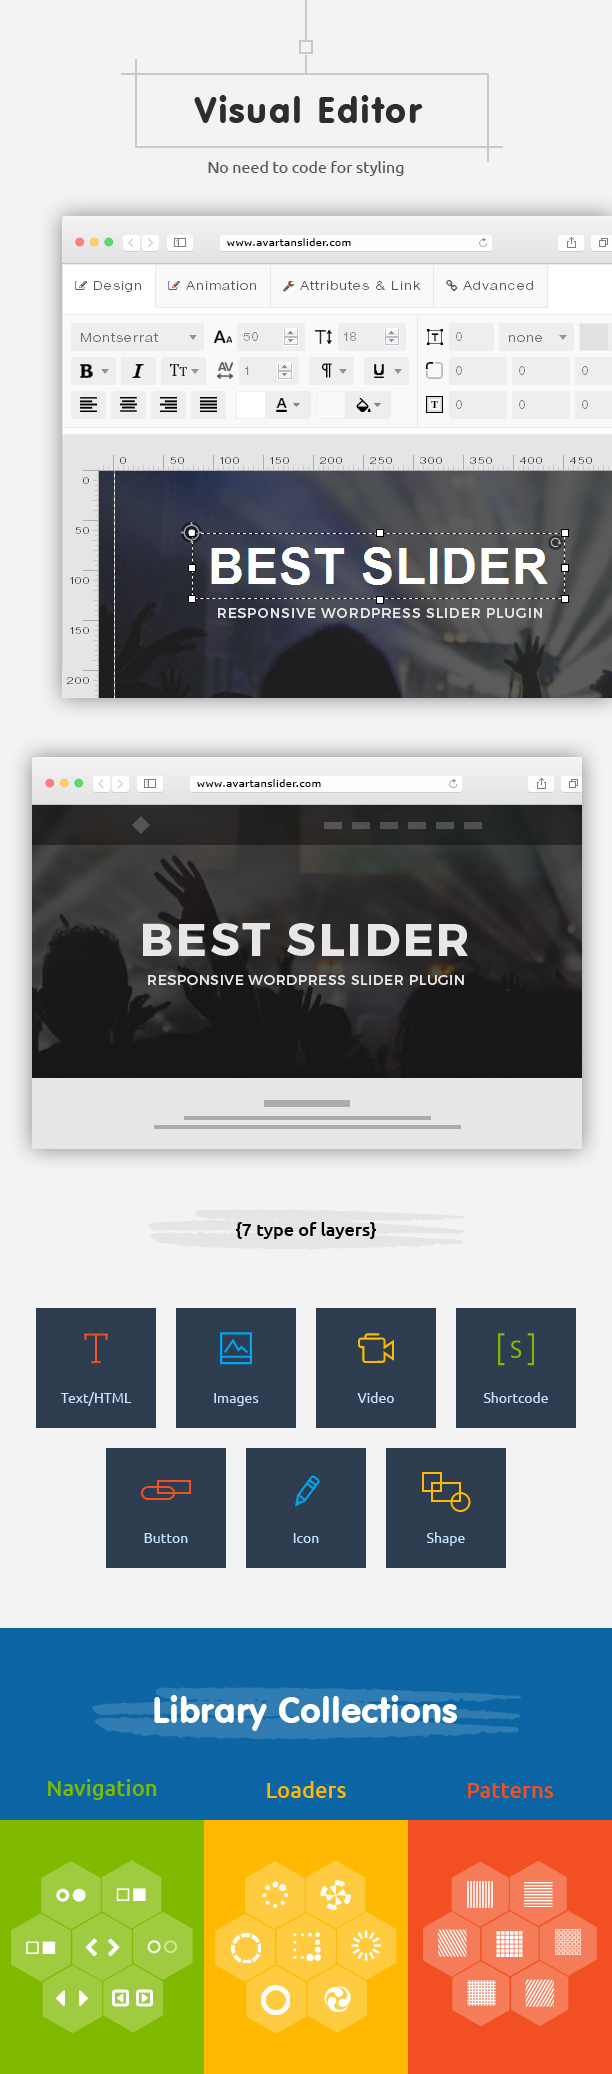 WordPress Slider - Avartan Slider with Advance Visual Editor